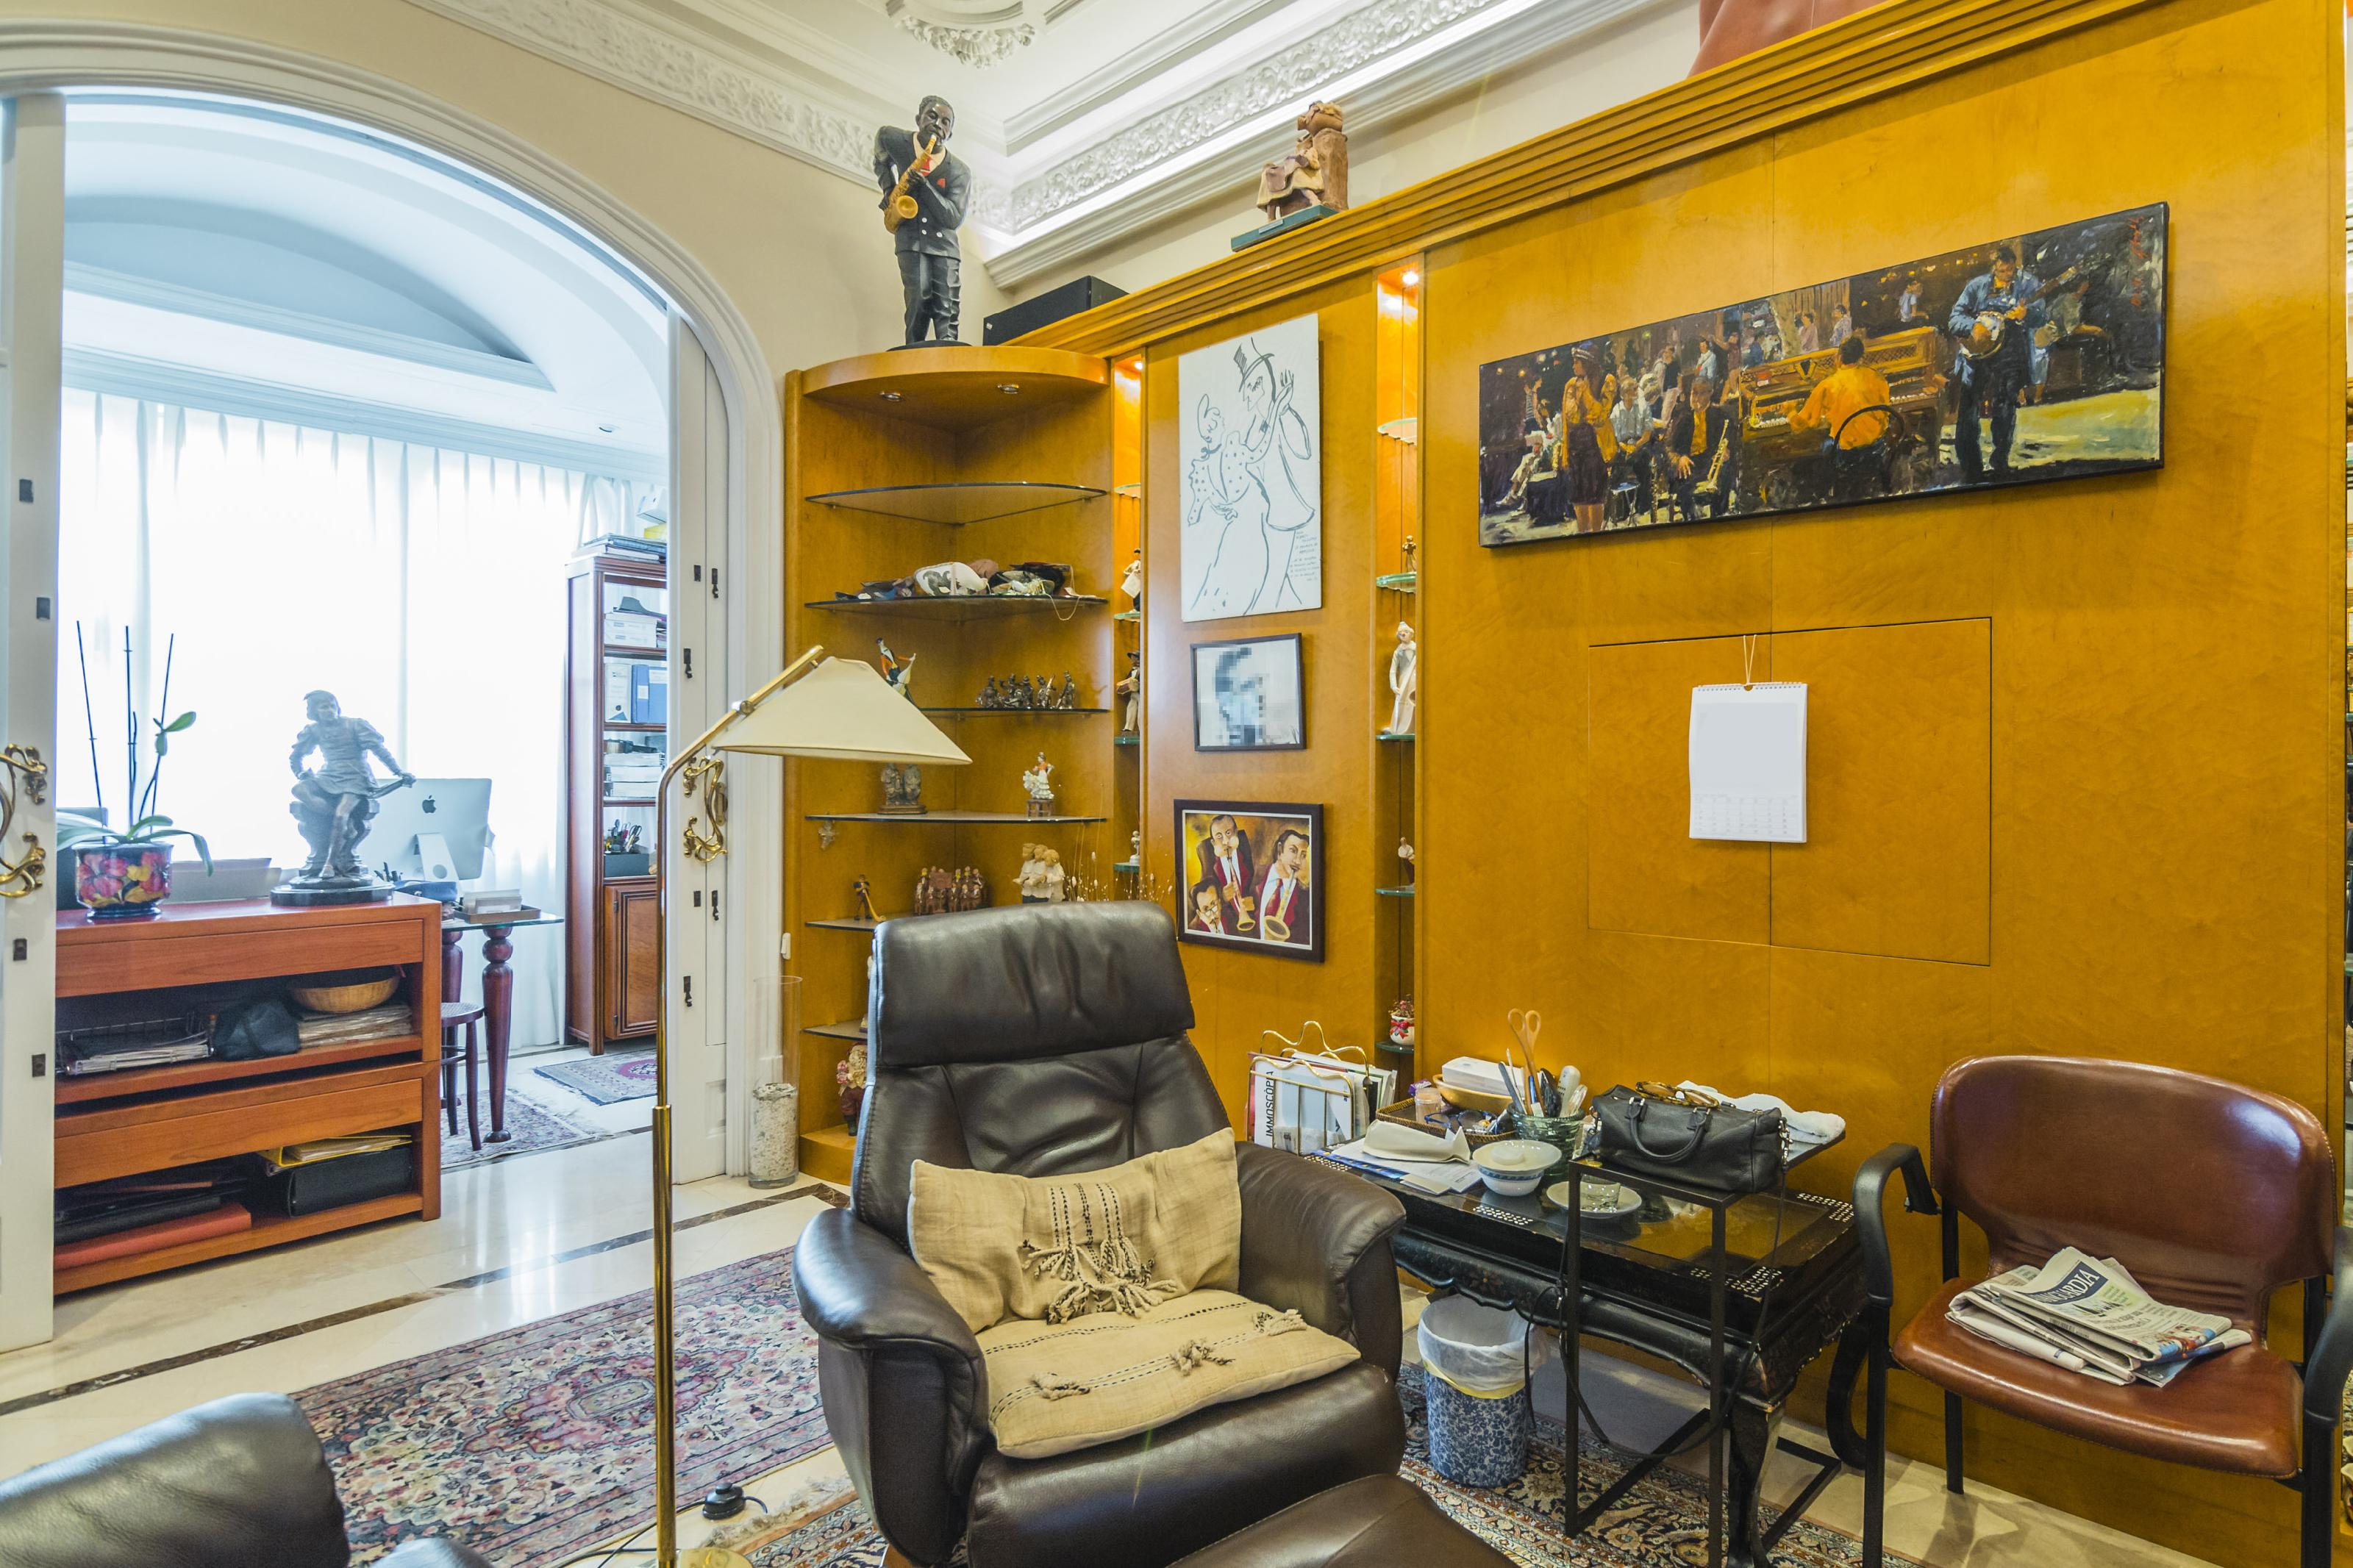 87800 Apartment for sale in Eixample, Dreta Eixample 21